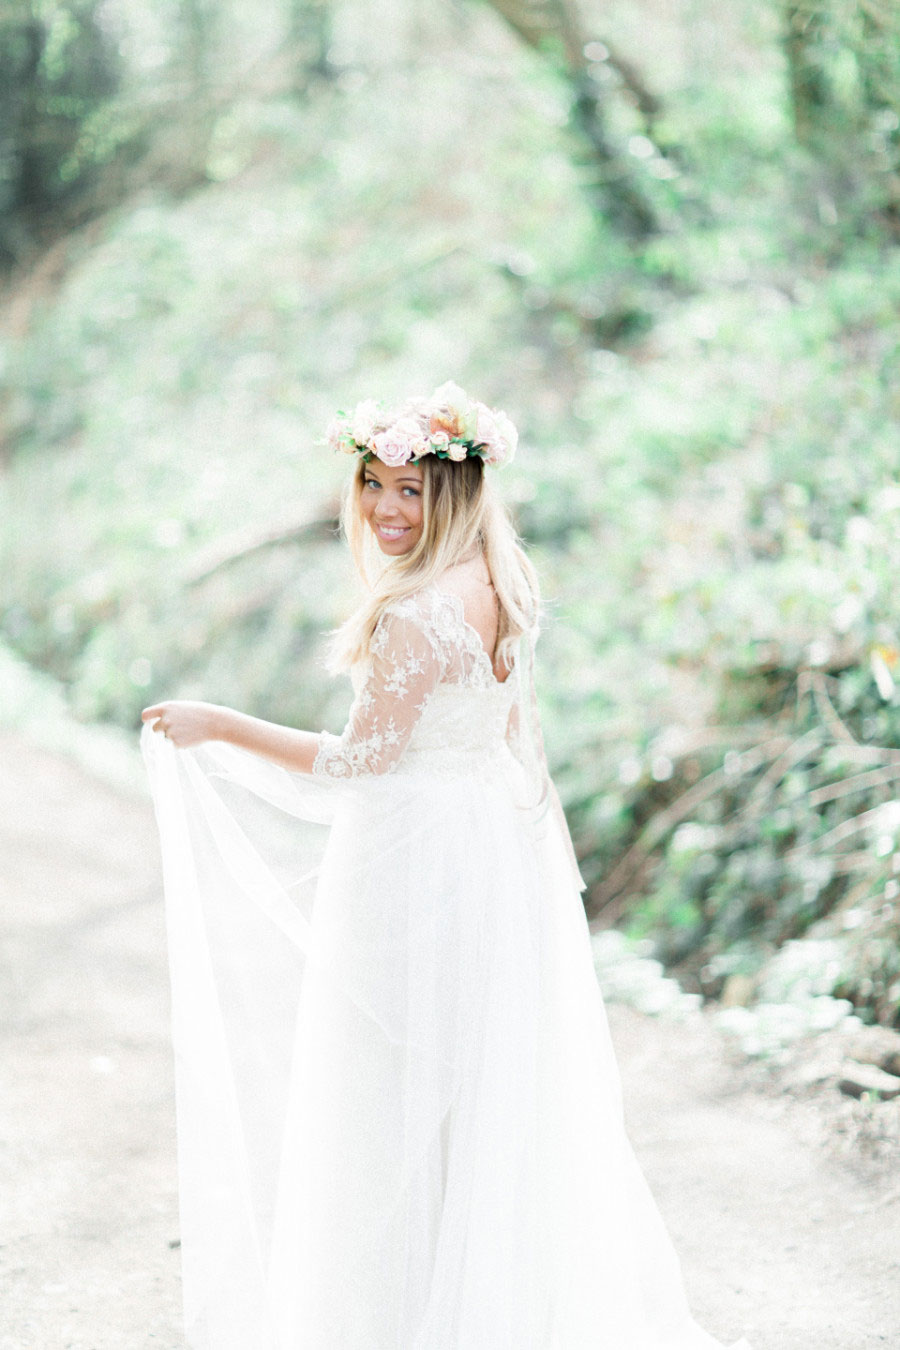 Alone In The Woods Bridal Editorial0003